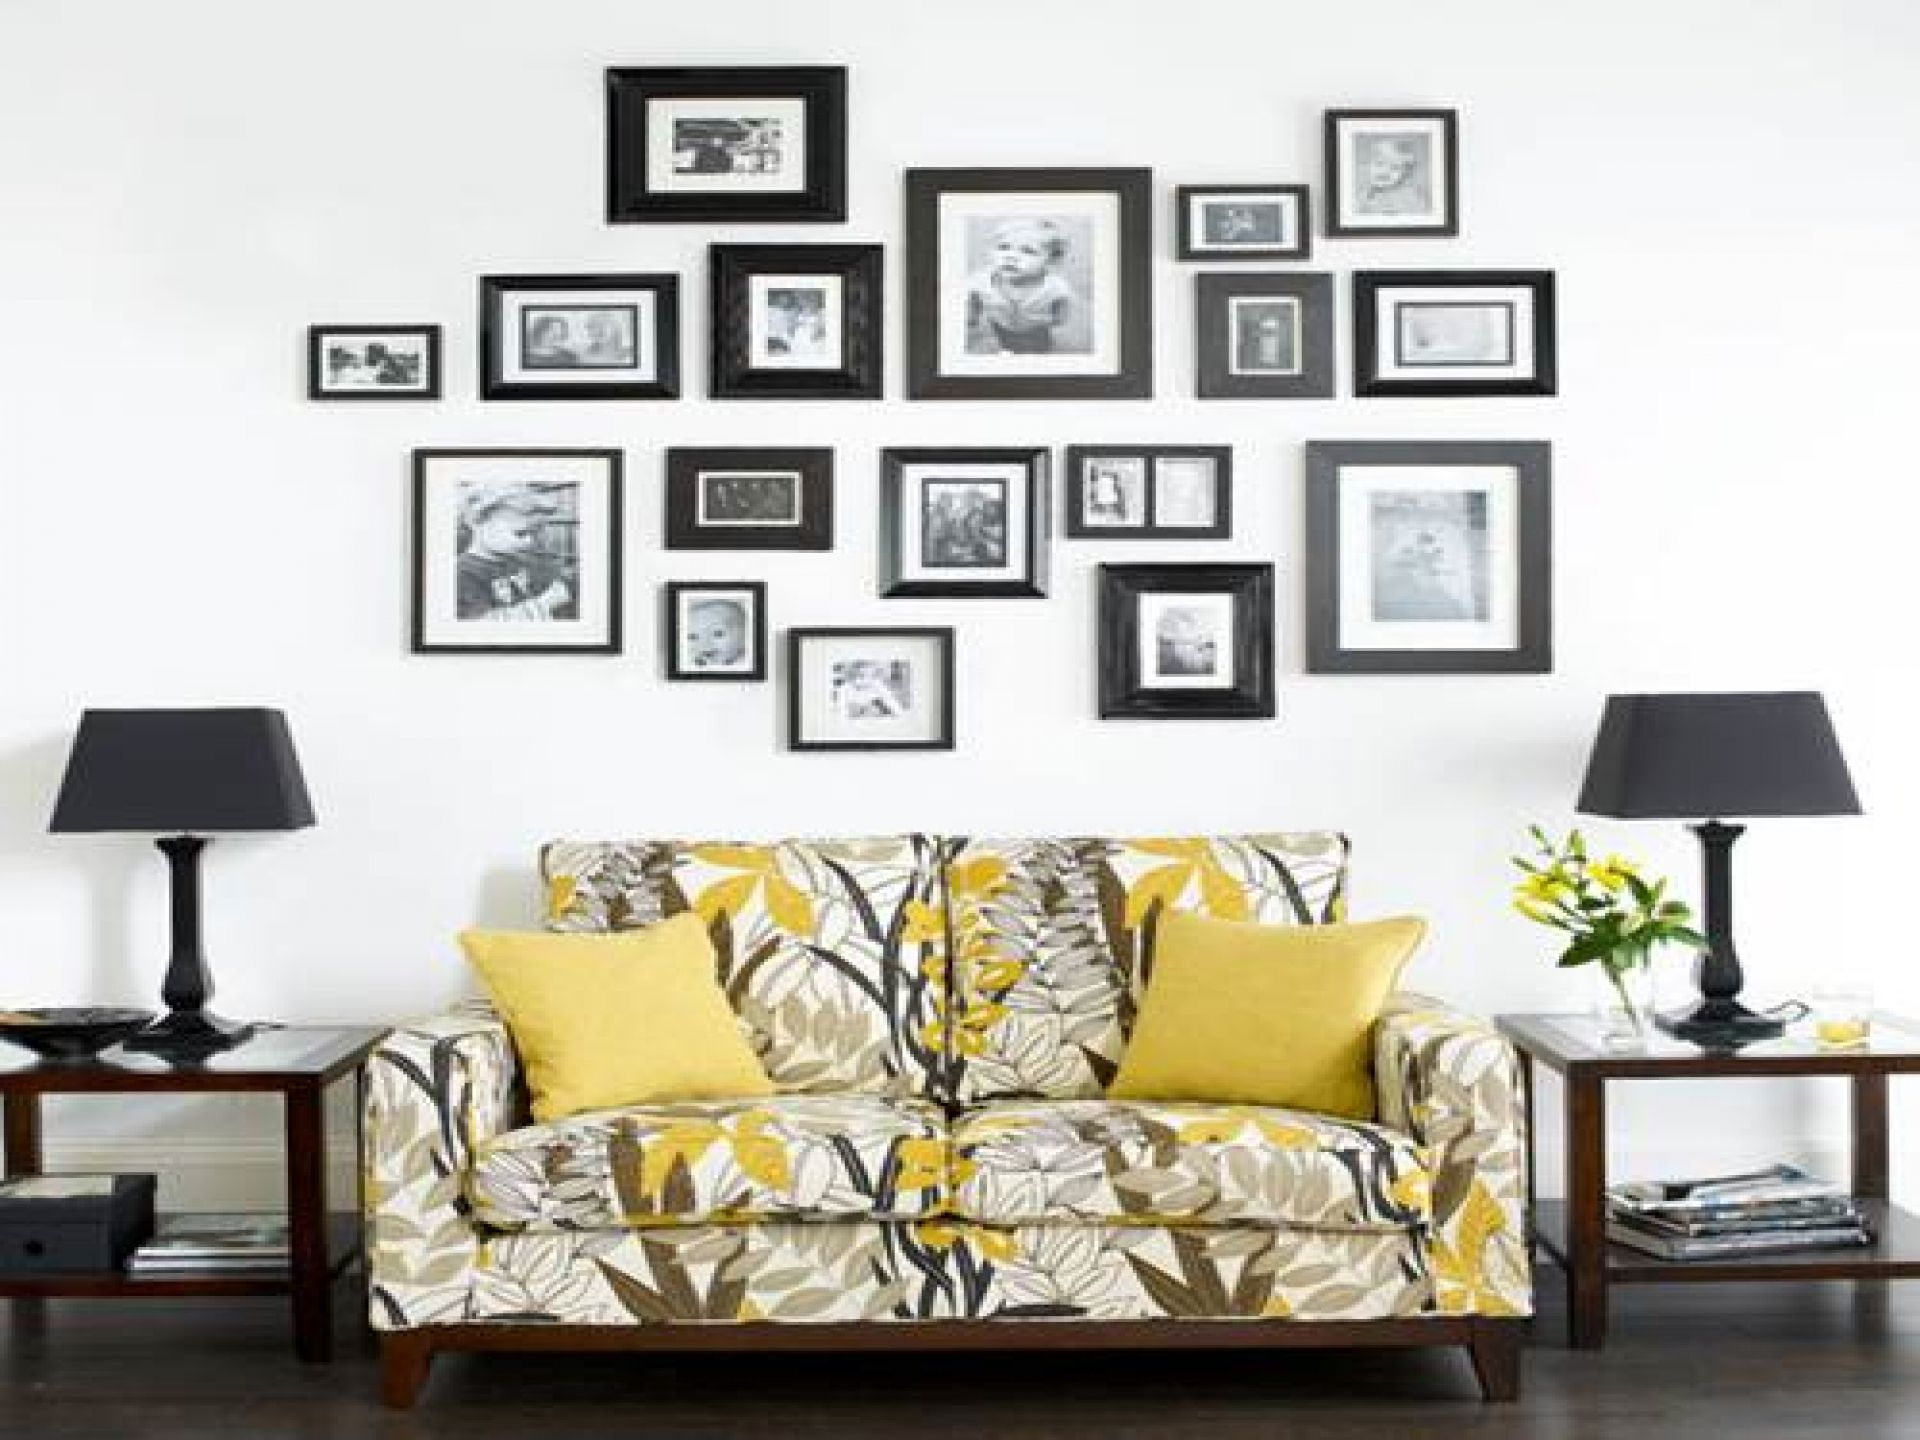 Use Family Photos as Wall Art Ideas for Family Room with Wooden Side Tables and Fluffy Sofa